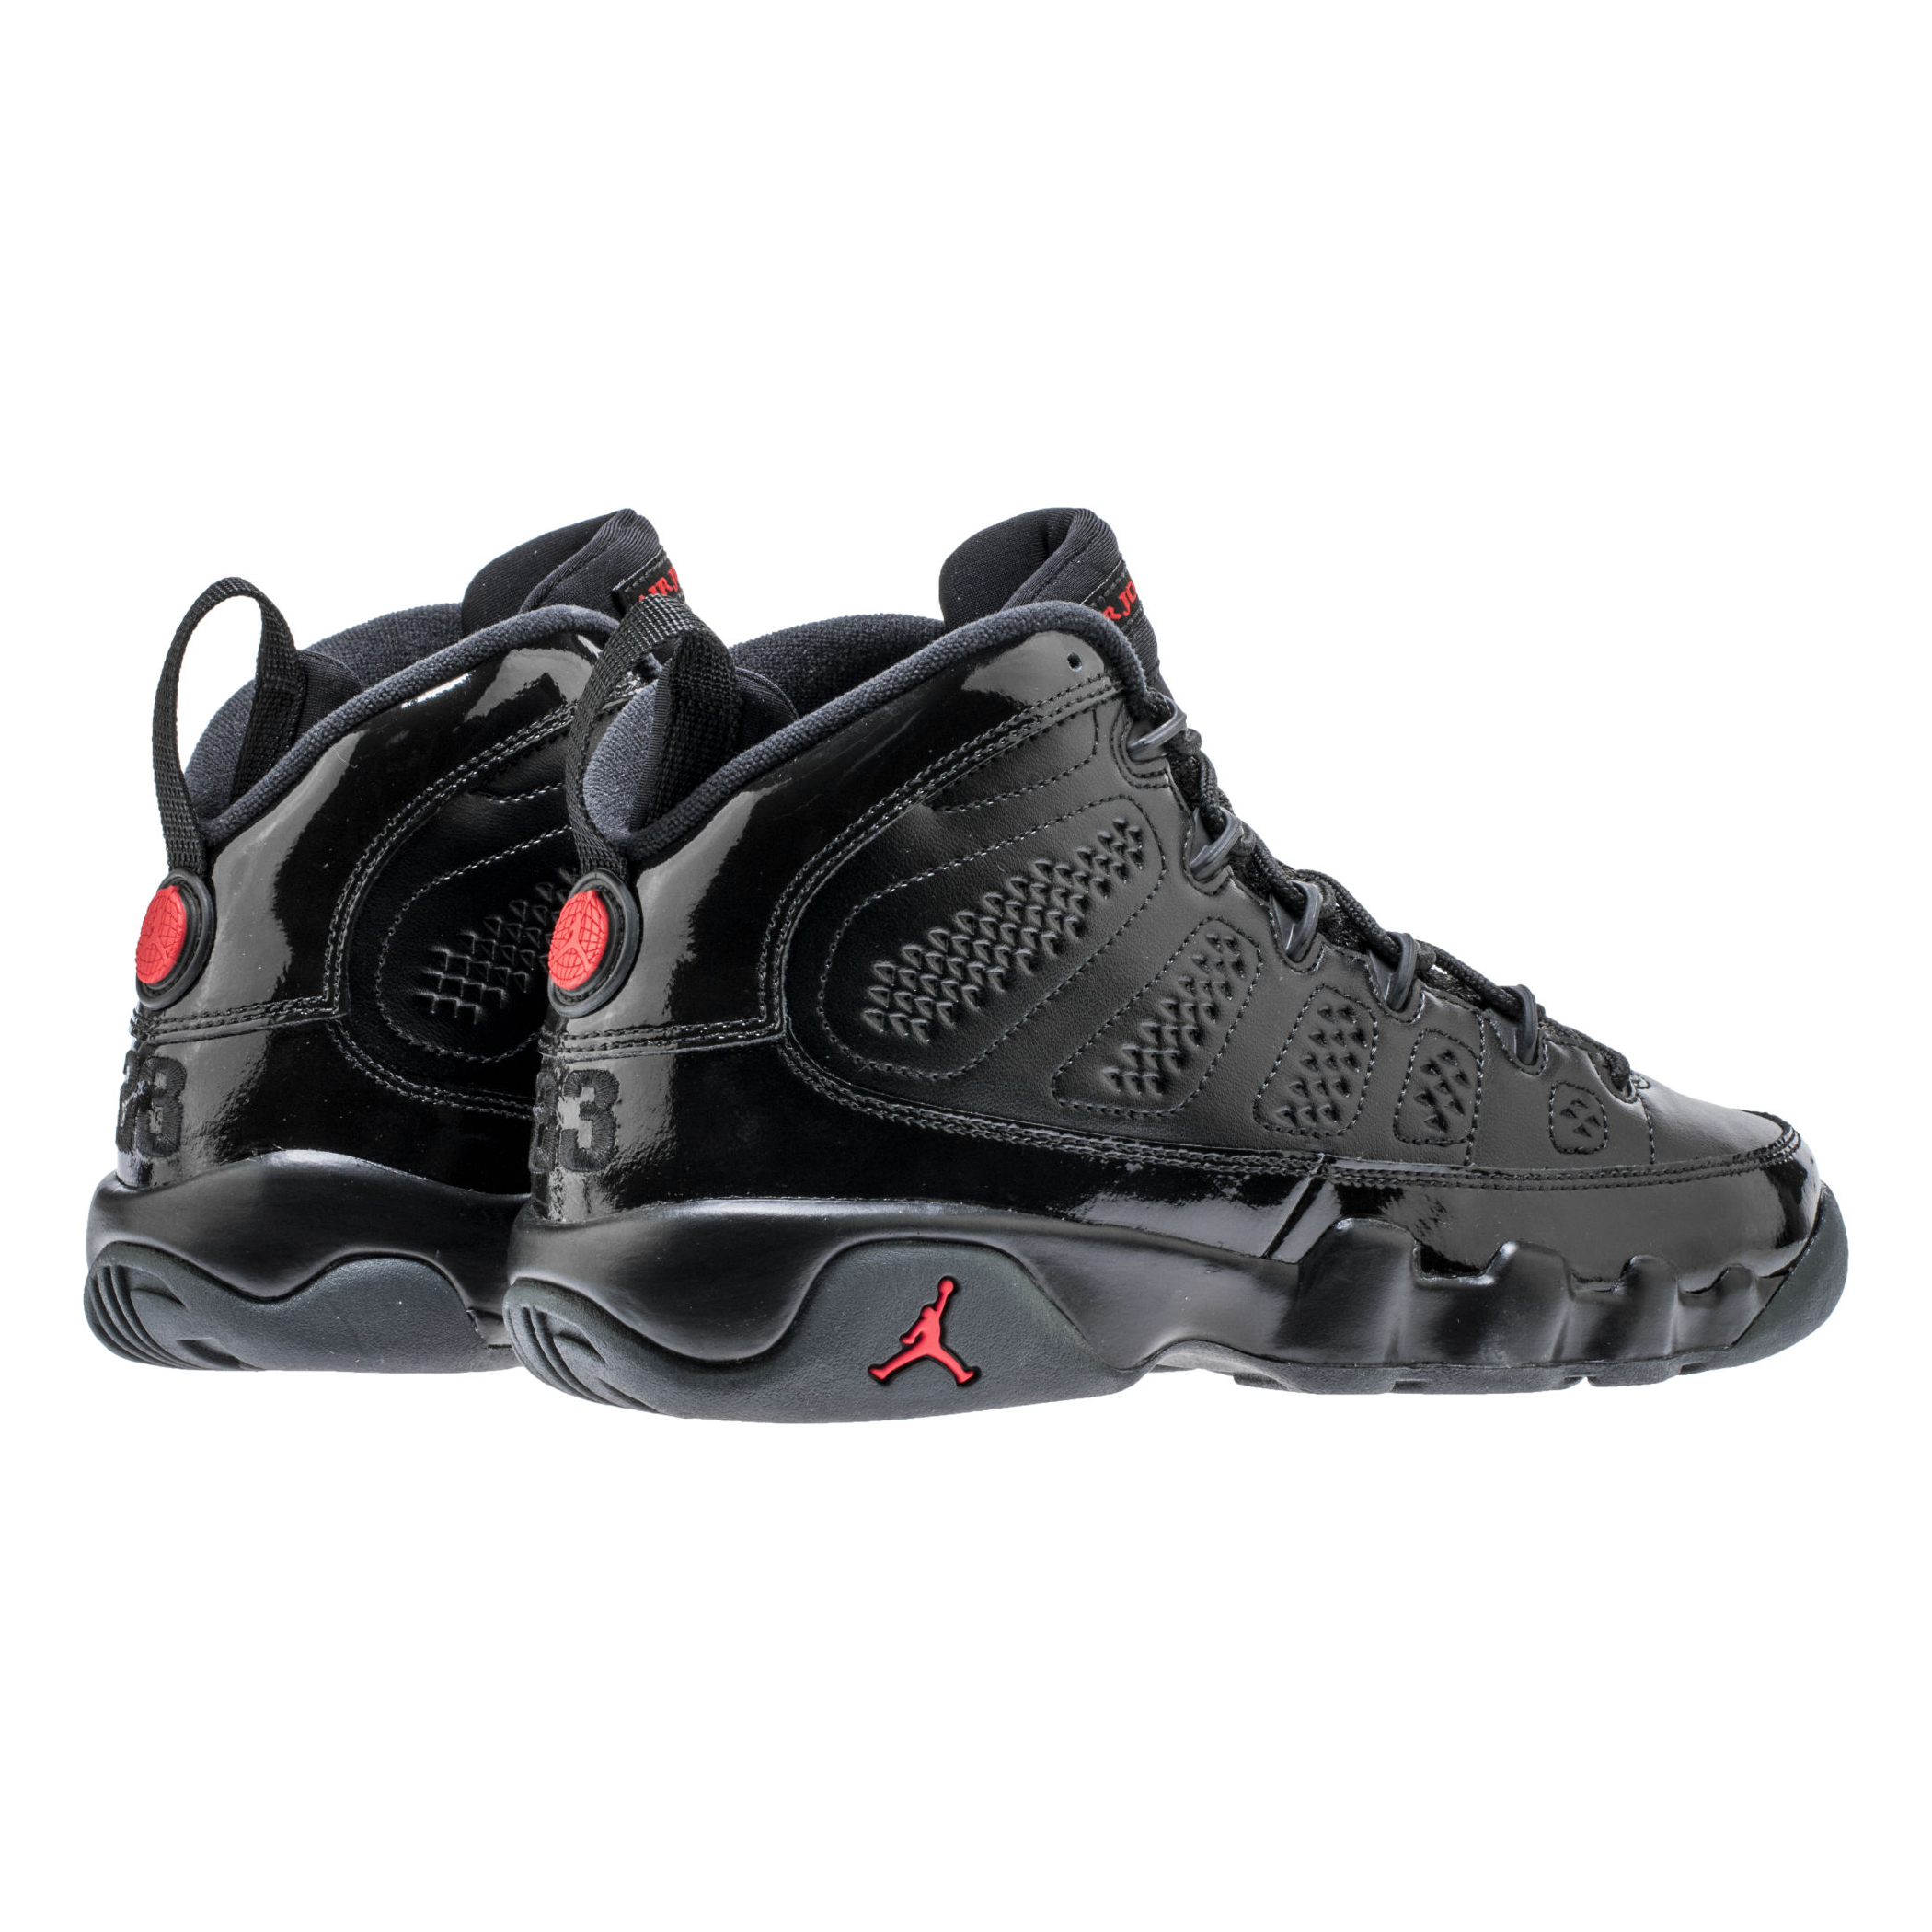 best website 3ff69 5dc10 The Air Jordan 9 in Black/University Red Drops for March ...